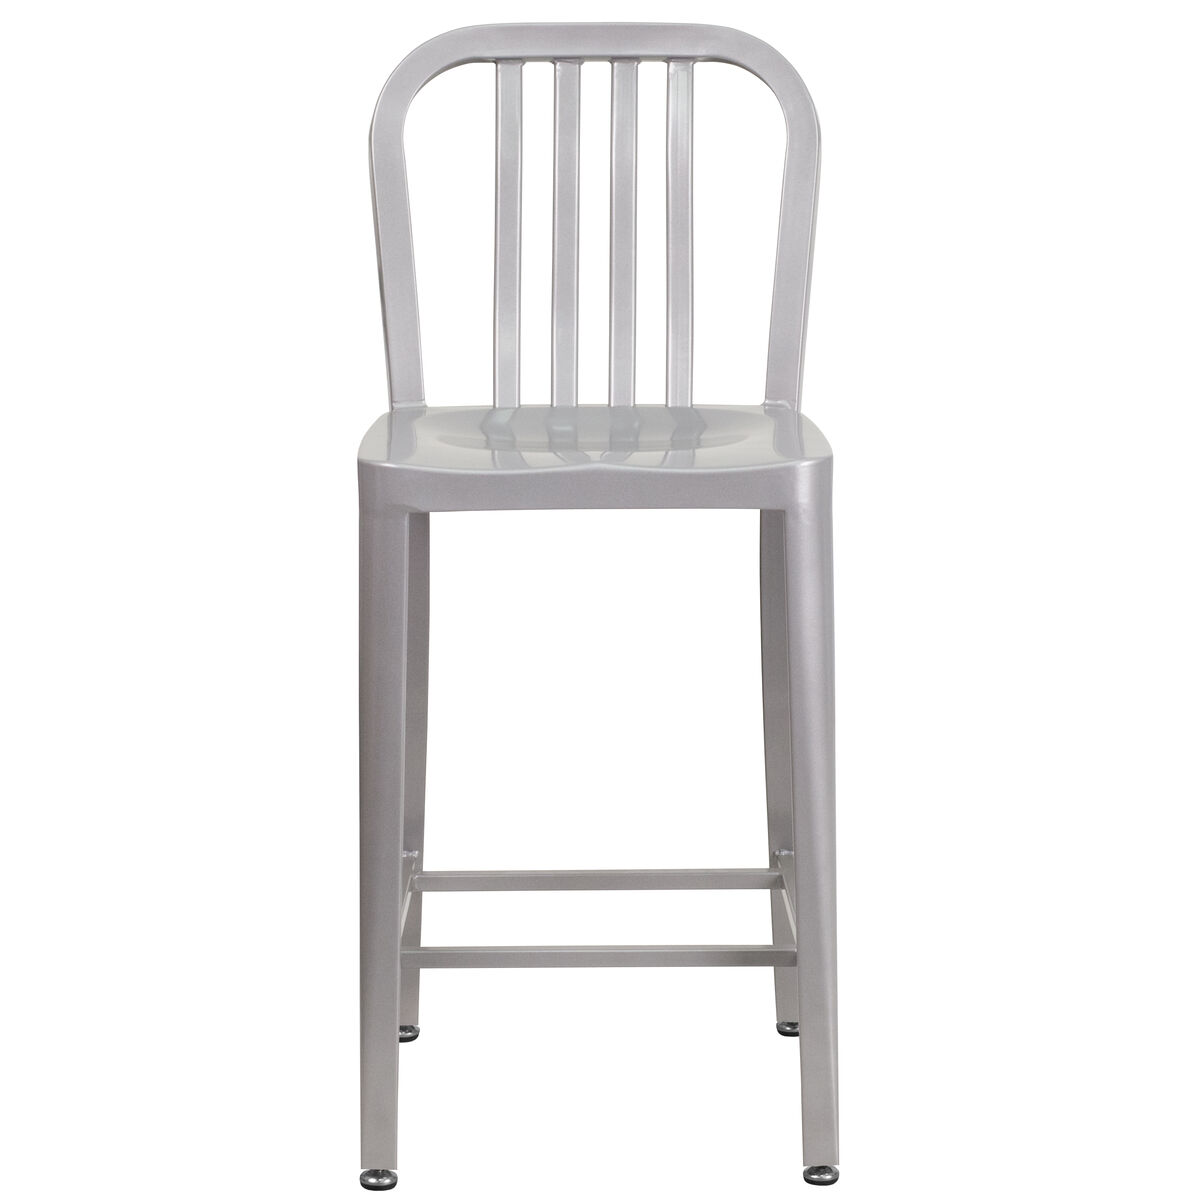 24 silver metal outdoor stool ch 61200 24 sil gg for Furniture 4 schools